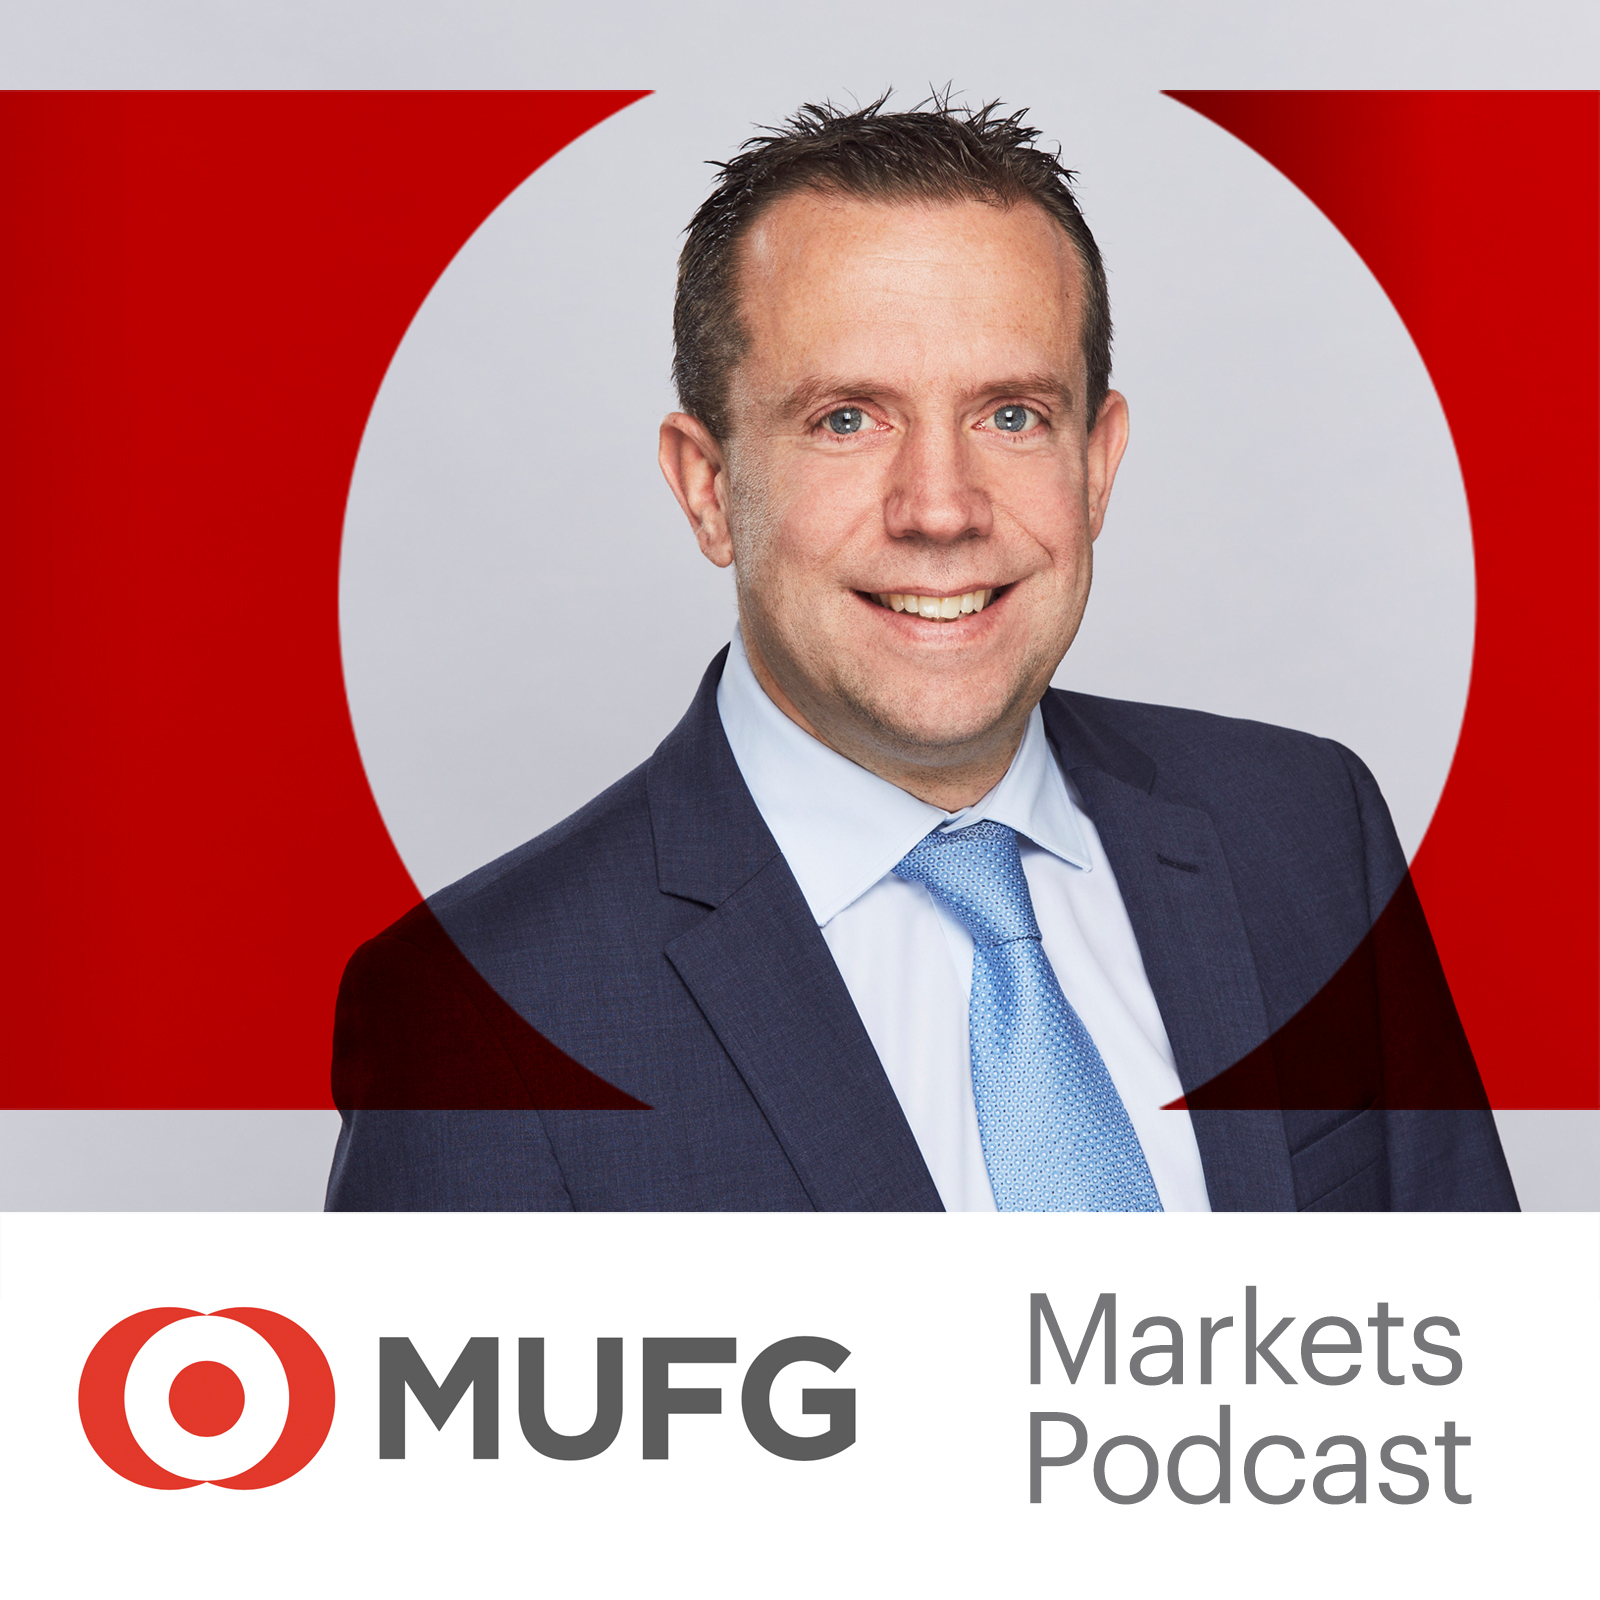 MUFG Markets Podcast - Brexit's Parliamentary Hurdles